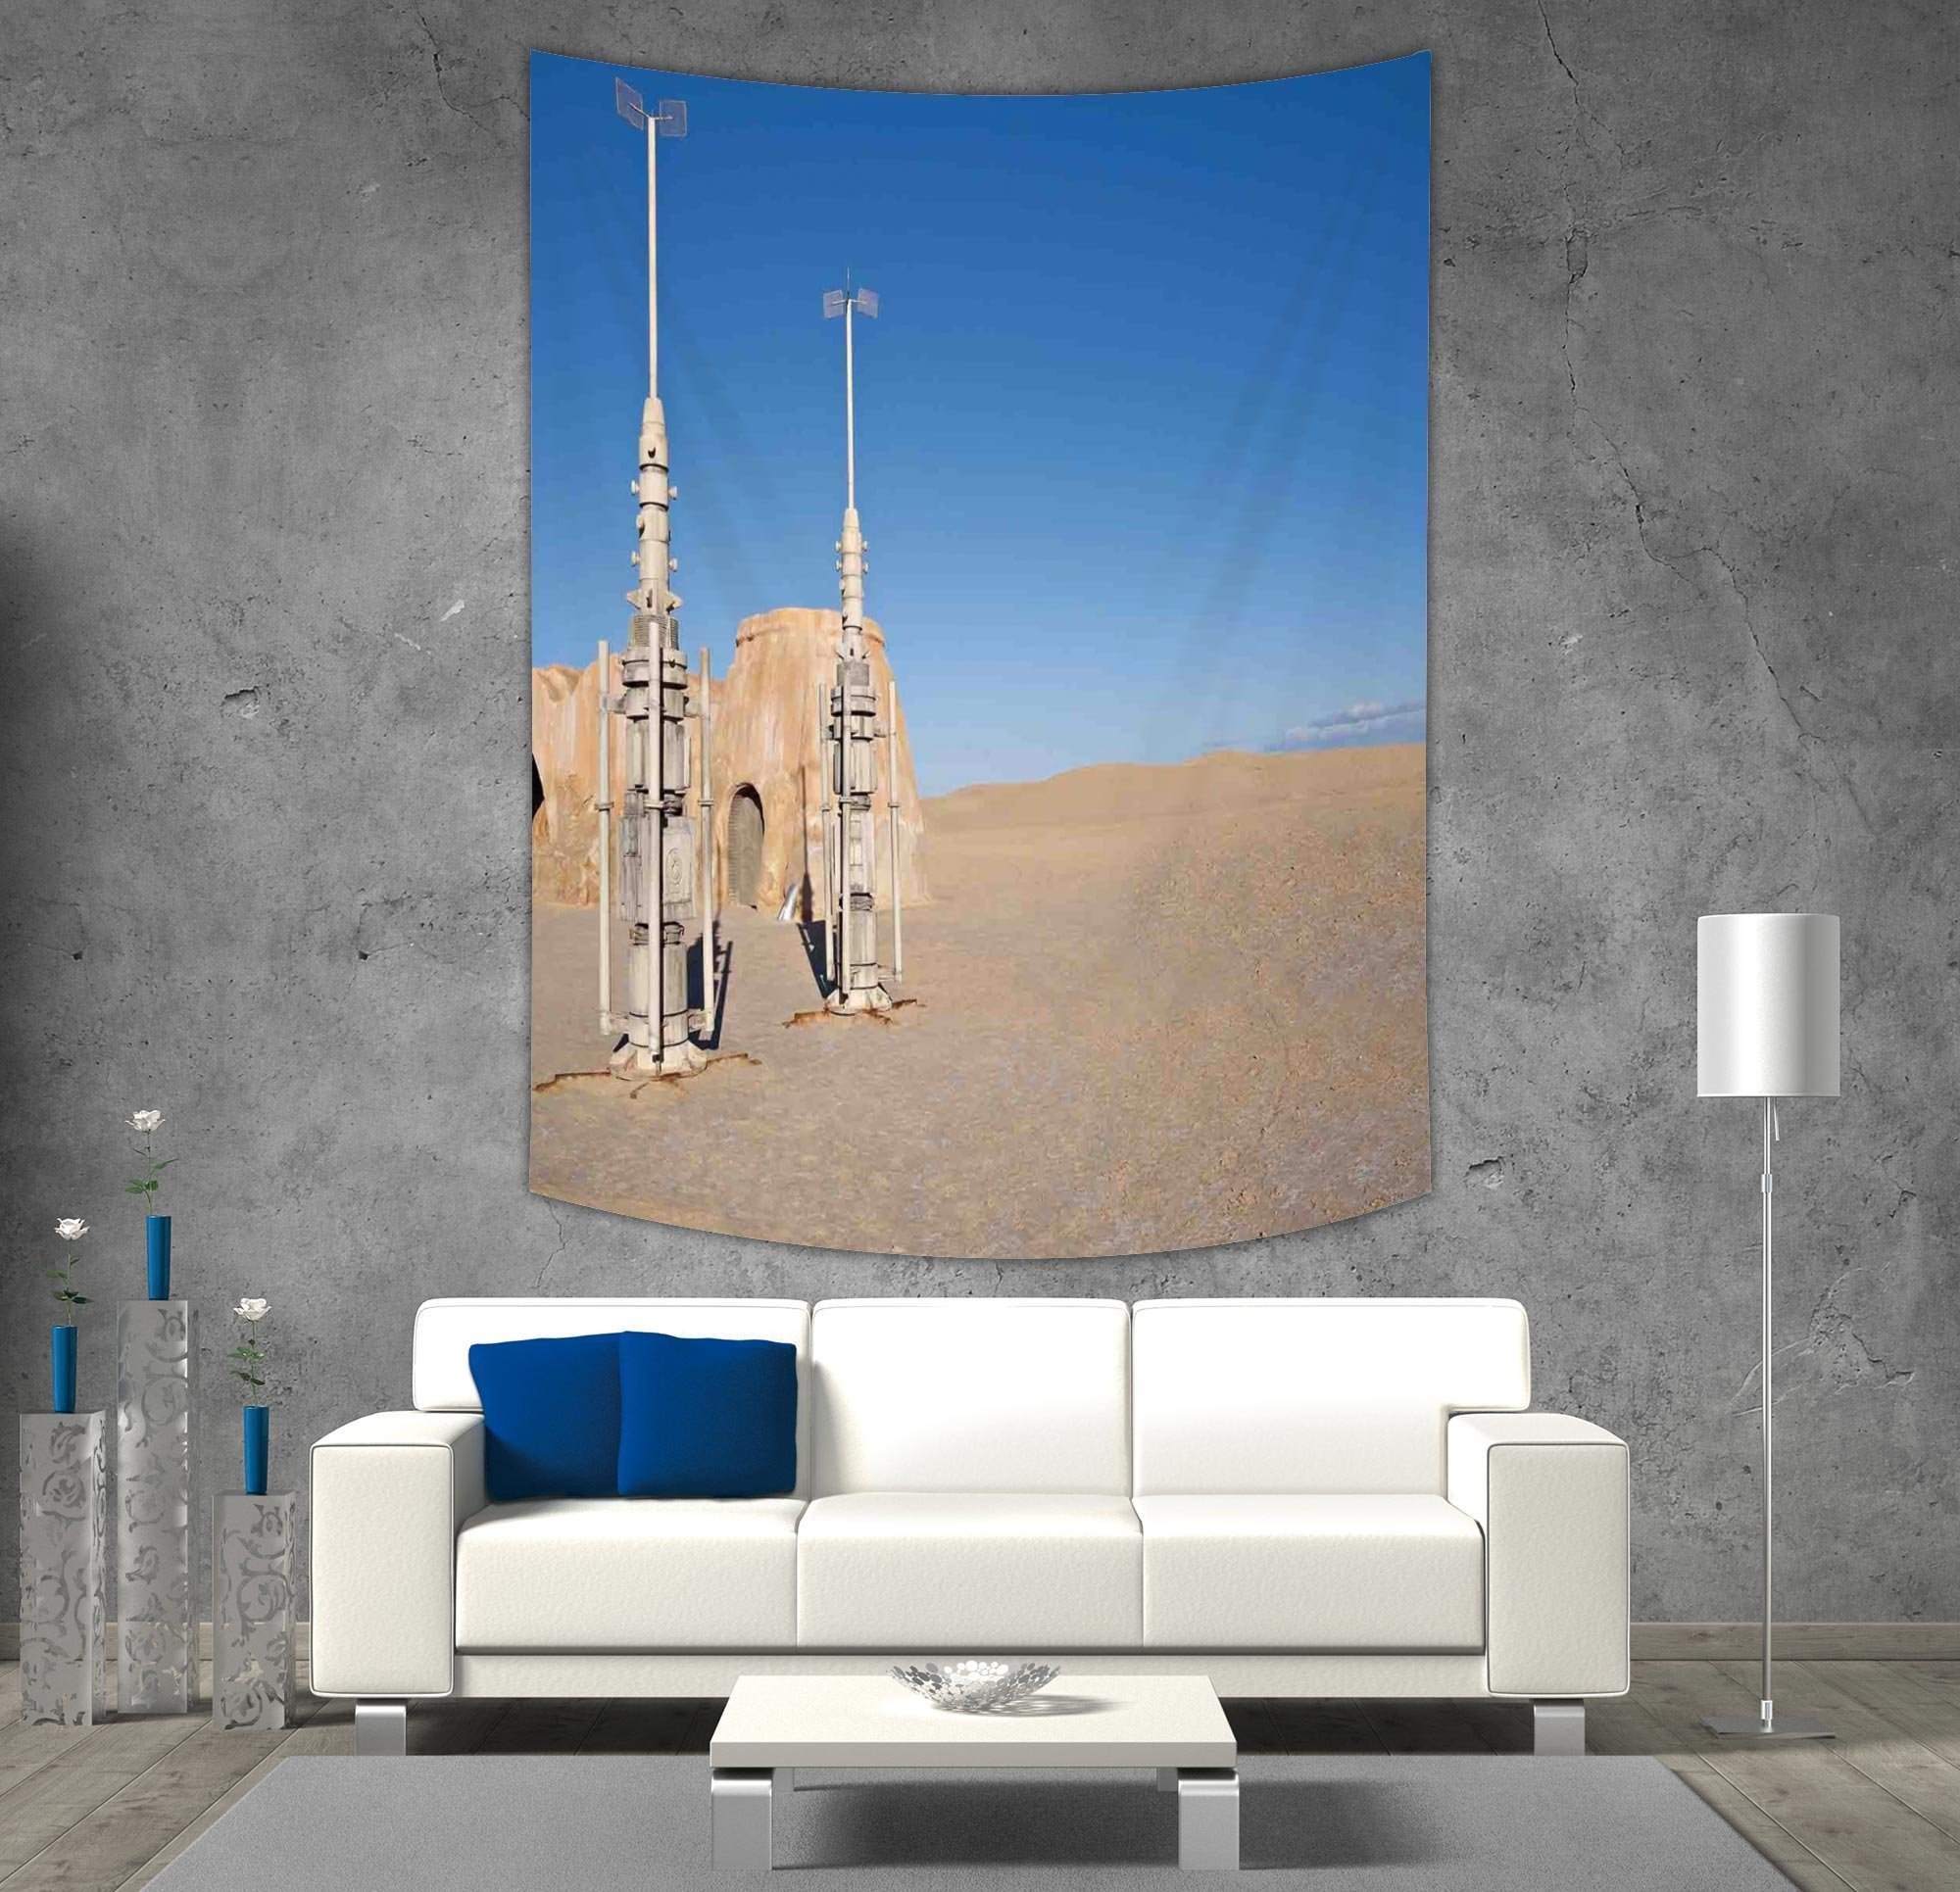 iPrint Polyester Tapestry Wall Hanging,Galaxy,Illustration of Town of Famous Movie Set on the Planet Fantasy Space Wars Theme,Brown Blue,Wall Decor for Bedroom Living Room Dorm